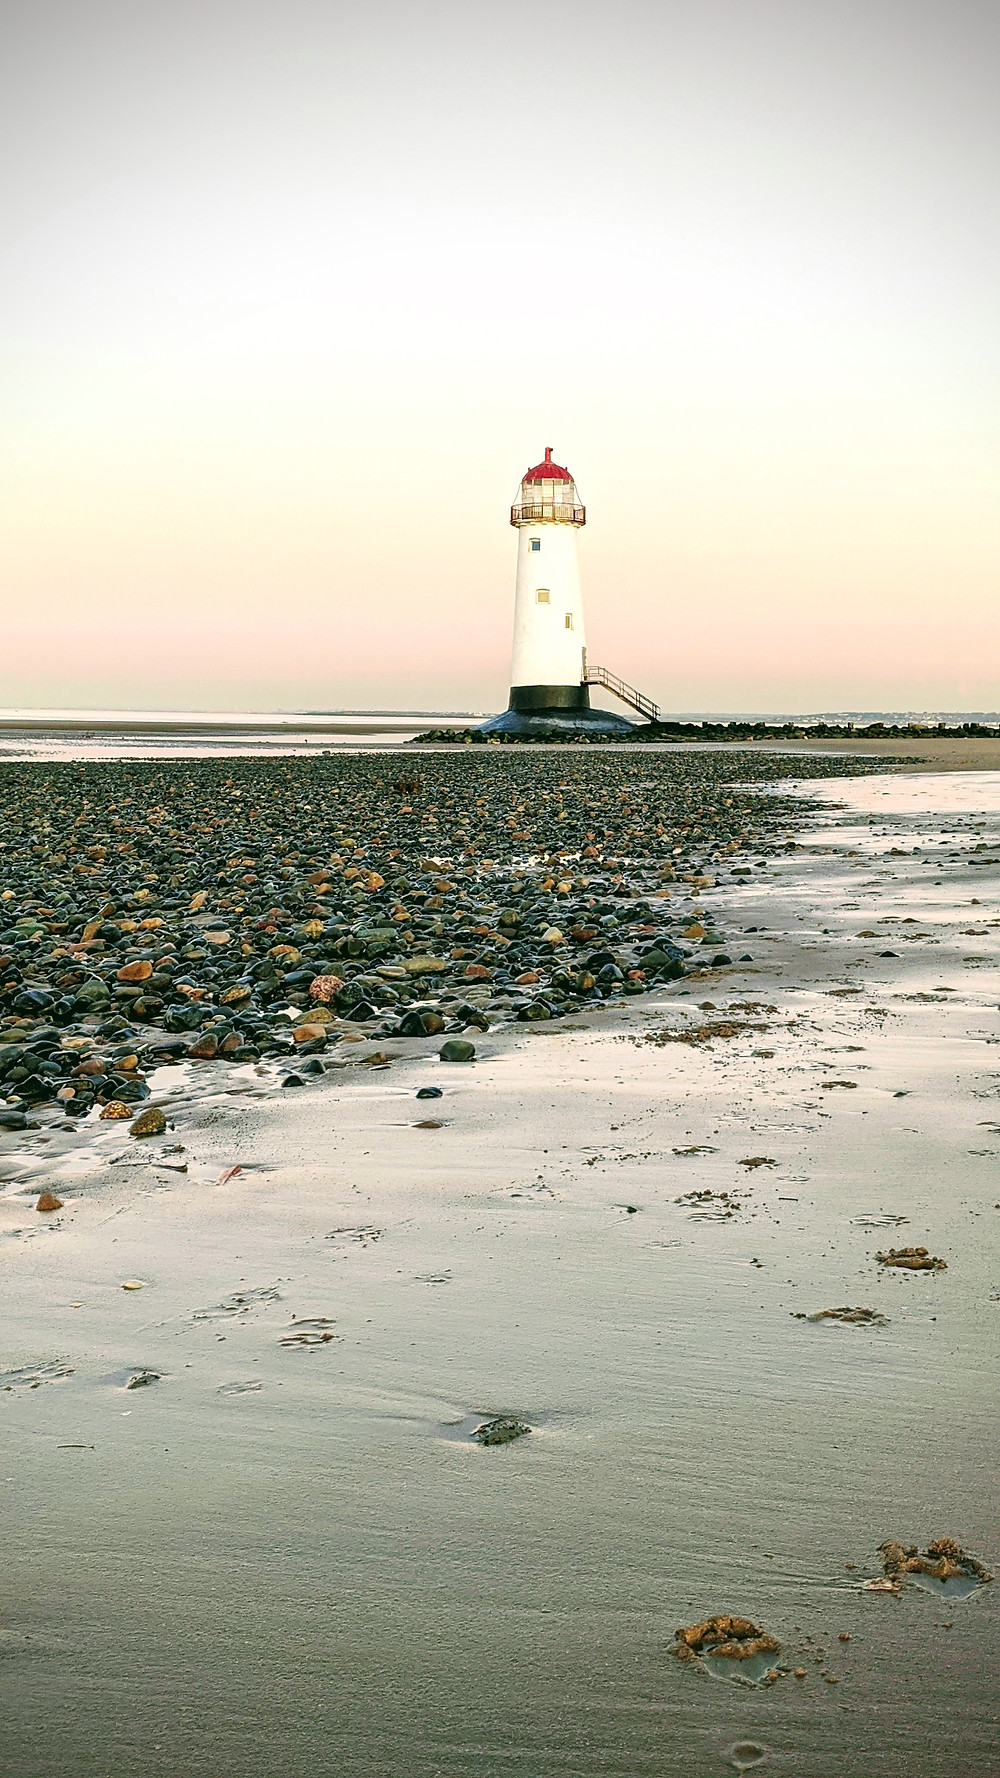 The grade II listed lighthouse at Talacre